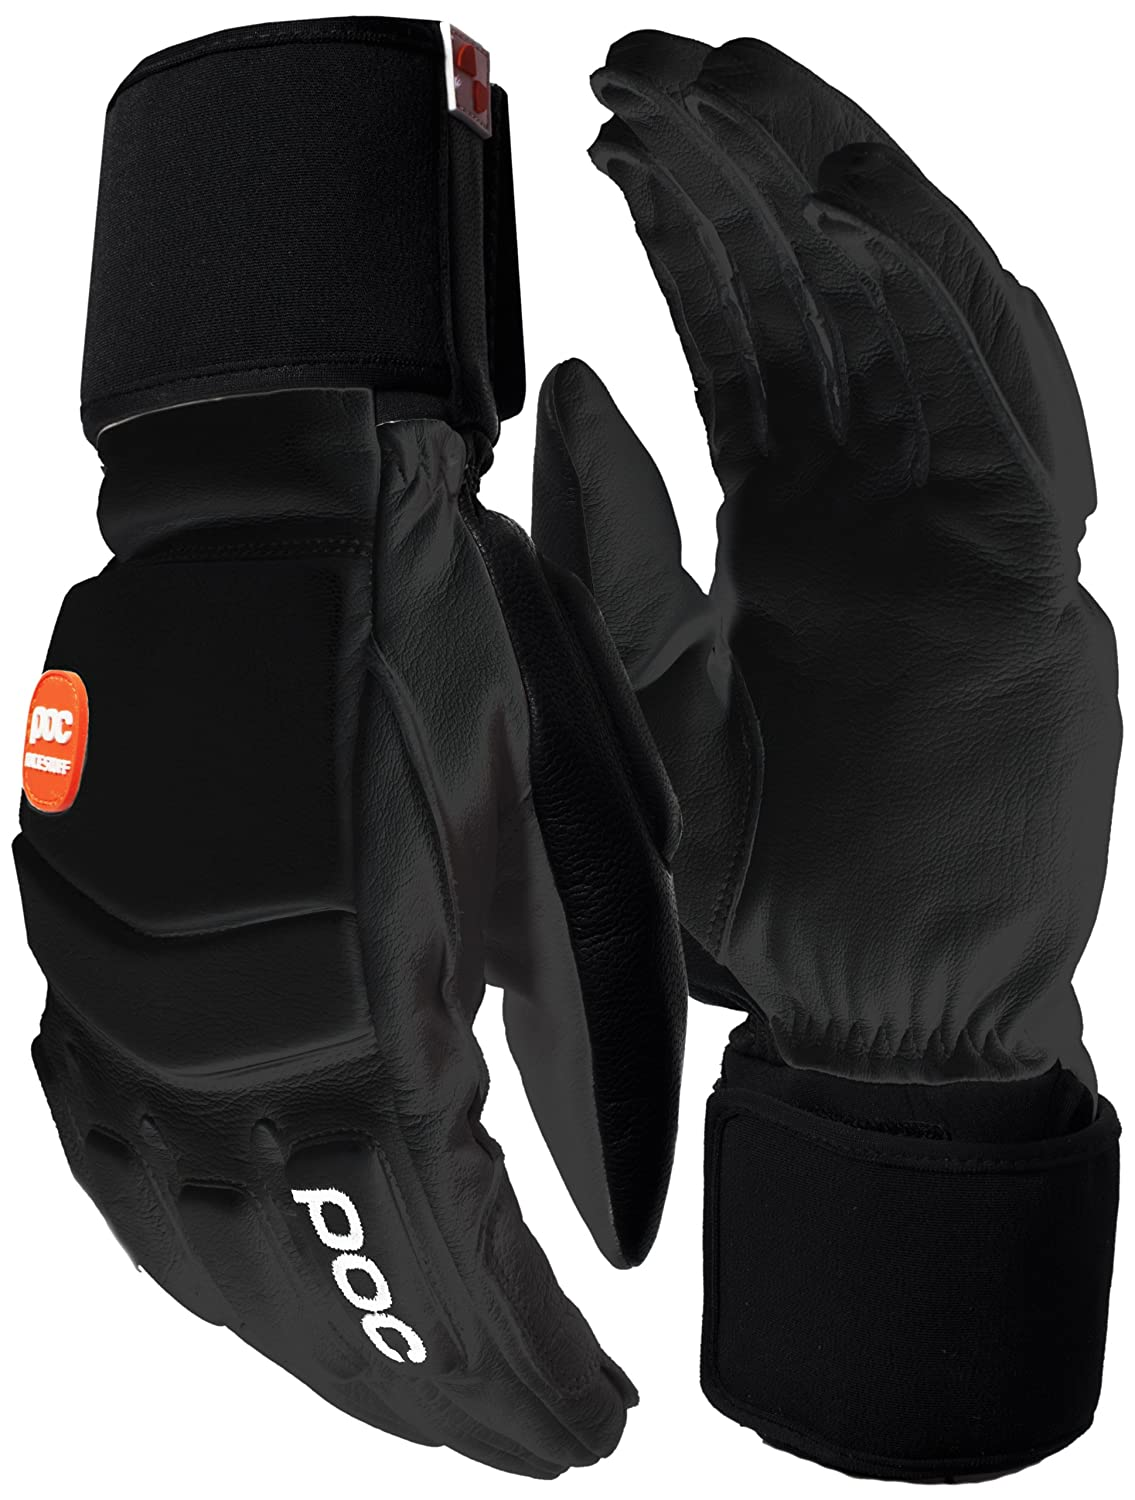 POC Handschuhe Palm Comp VPD 2.0 Gloves